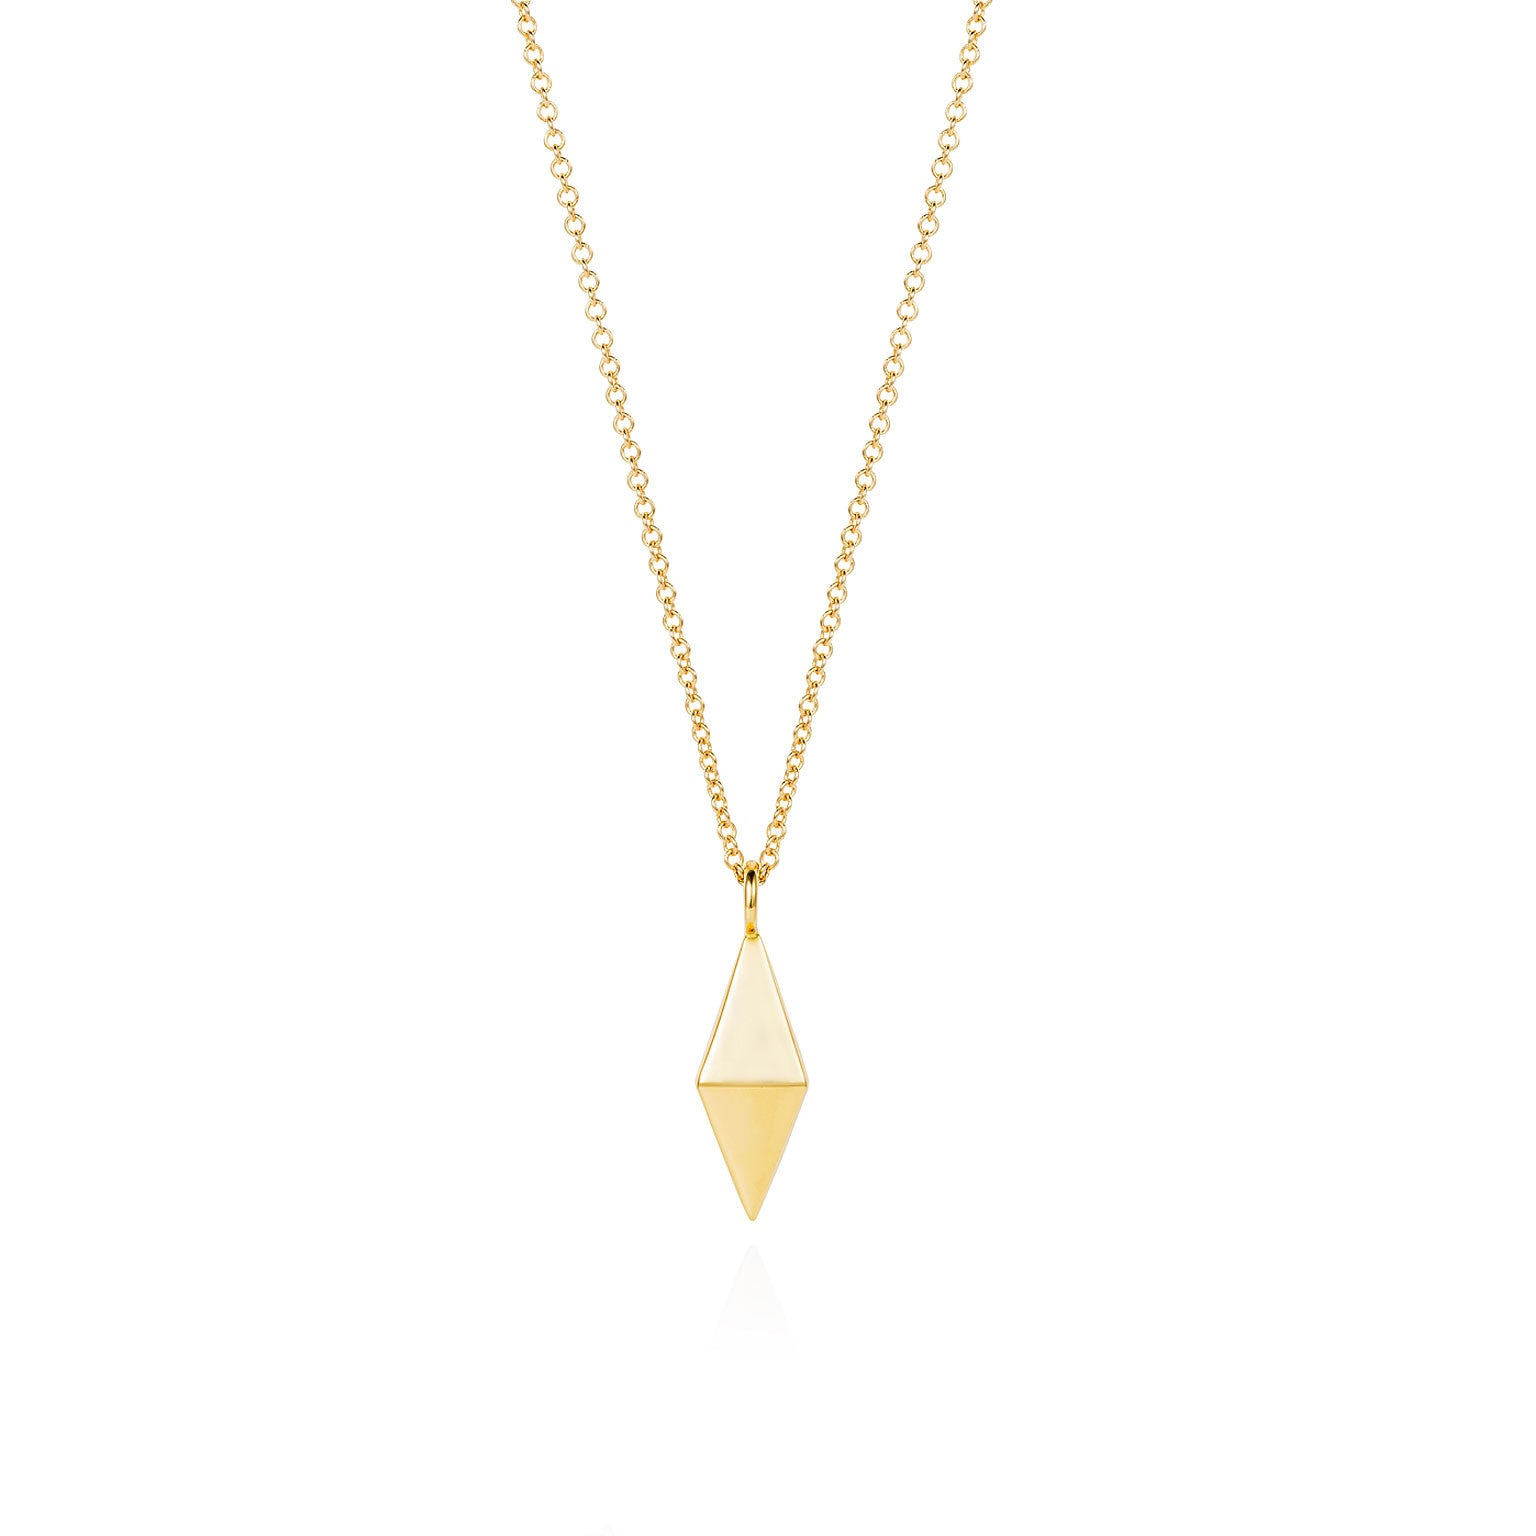 Double Pyramid Gold Necklace – Crucible London